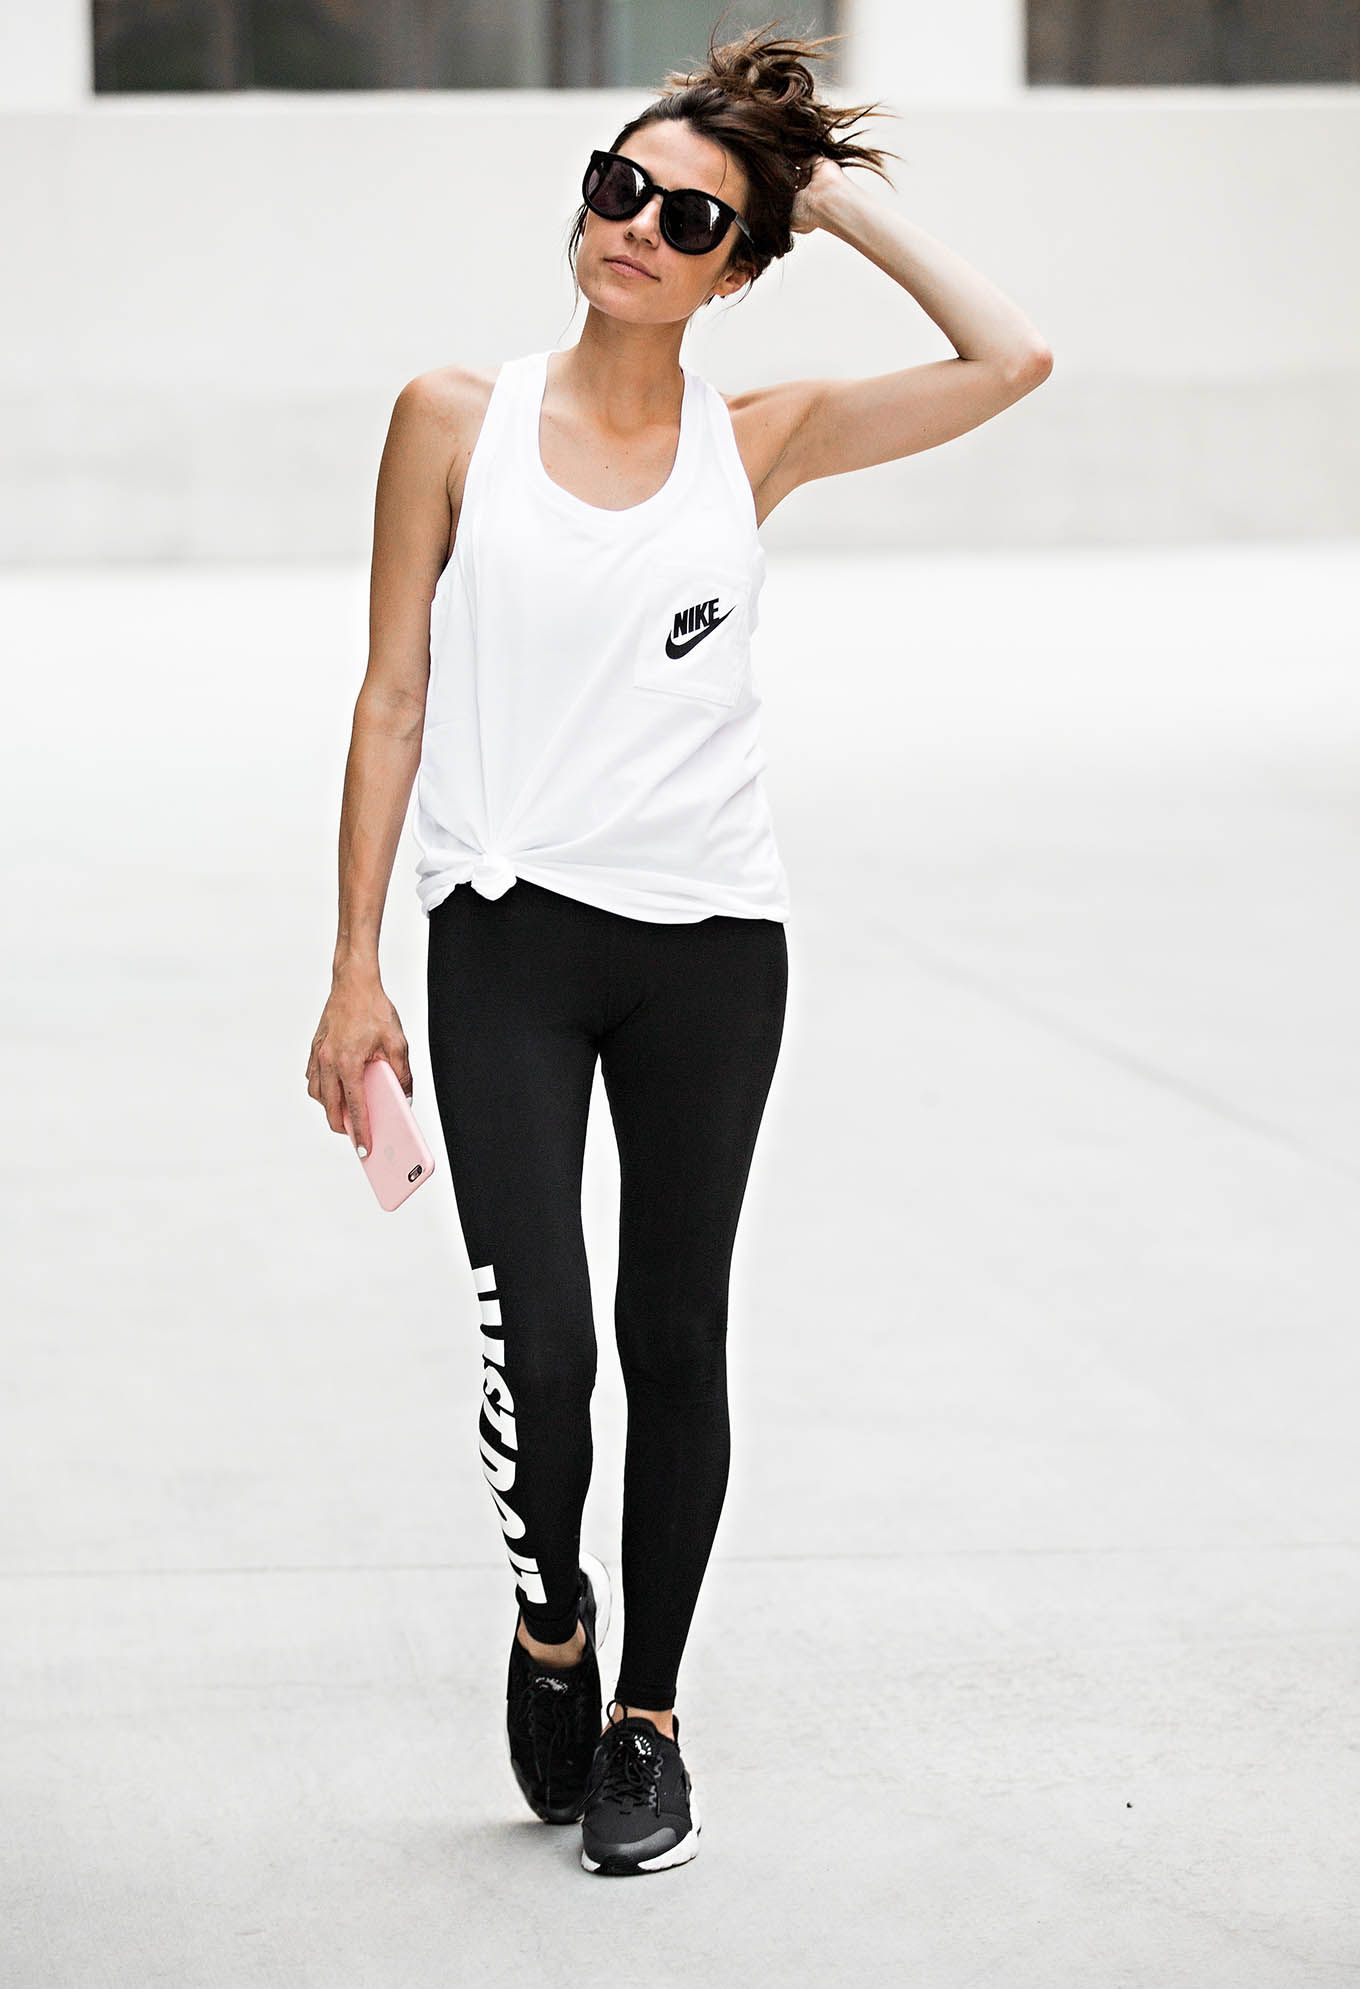 a296bb3f4bfd All about my Nikes and this athleisure look. Edit Post ‹  myhomestyleguide.com — WordPress Nike Workout Leggings